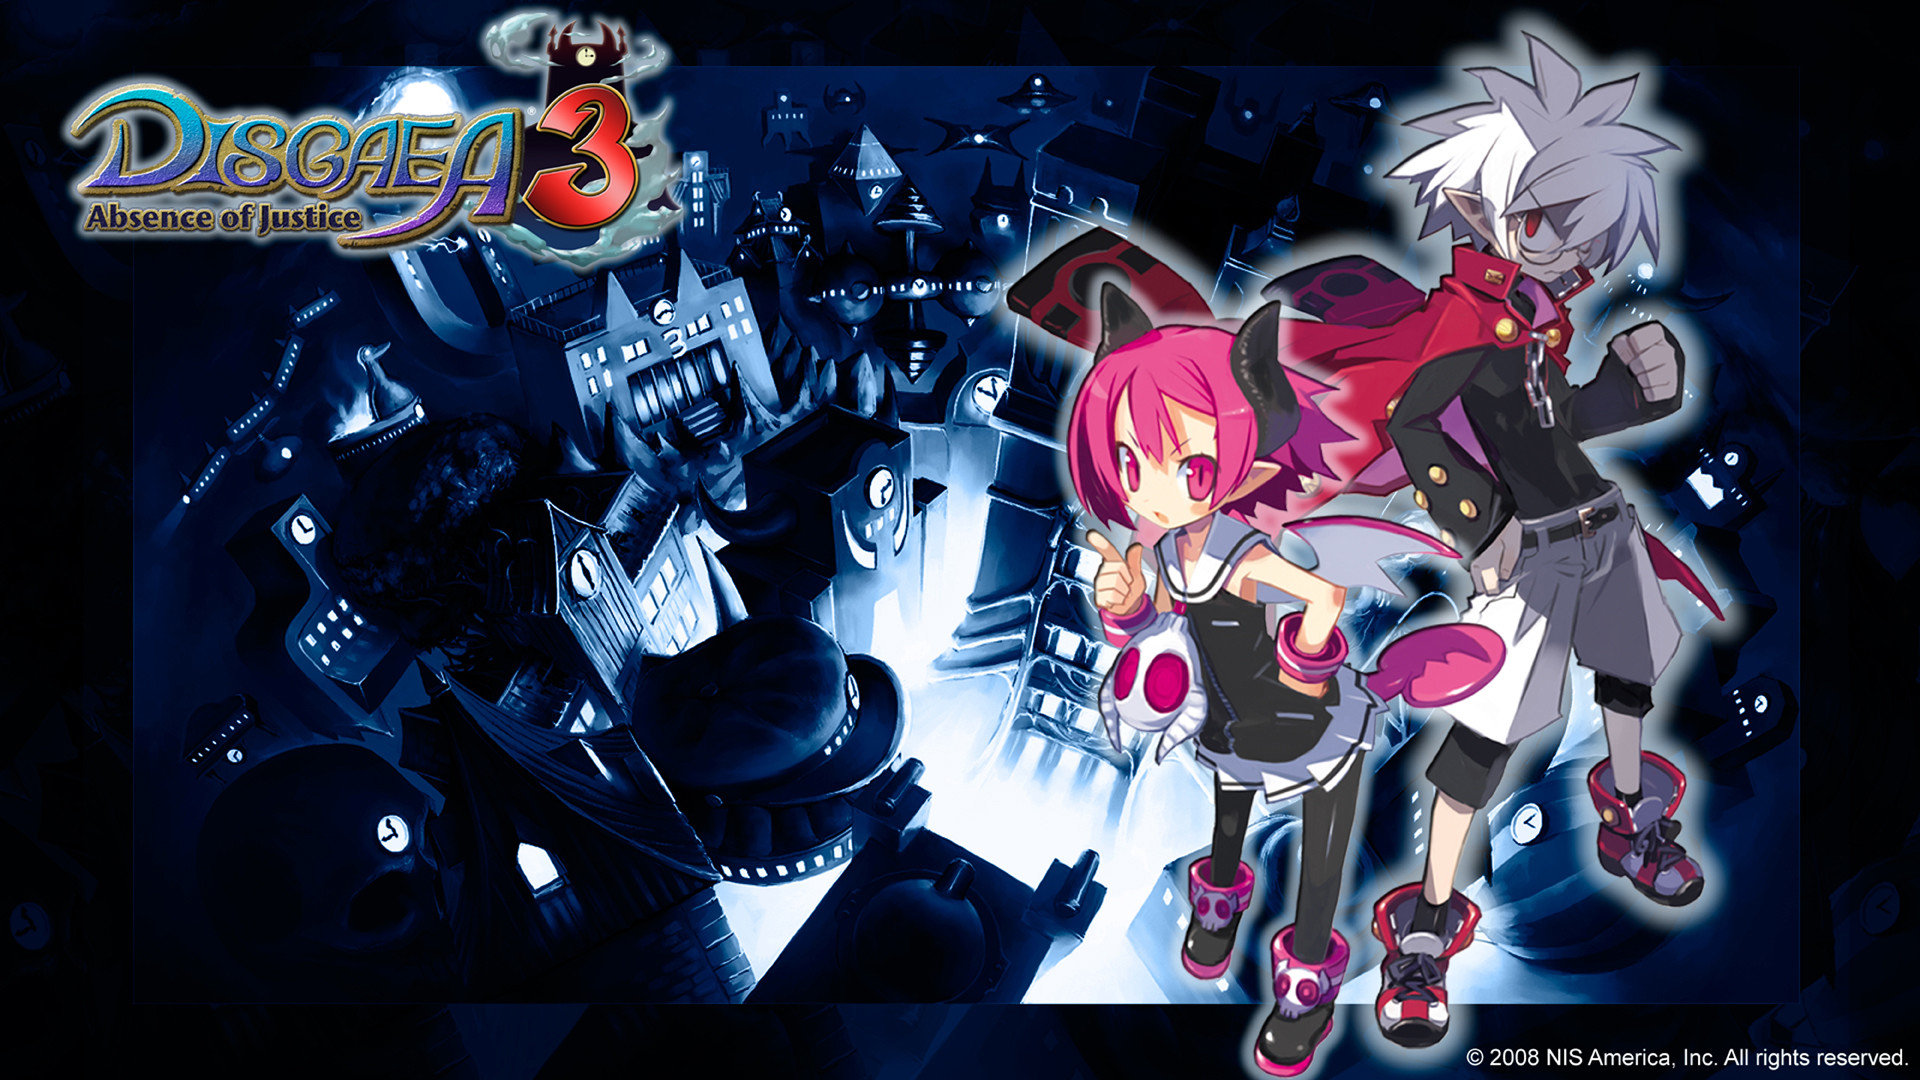 Res: 1920x1080, Disgaea HD Wallpapers 7 - 1920 X 1080